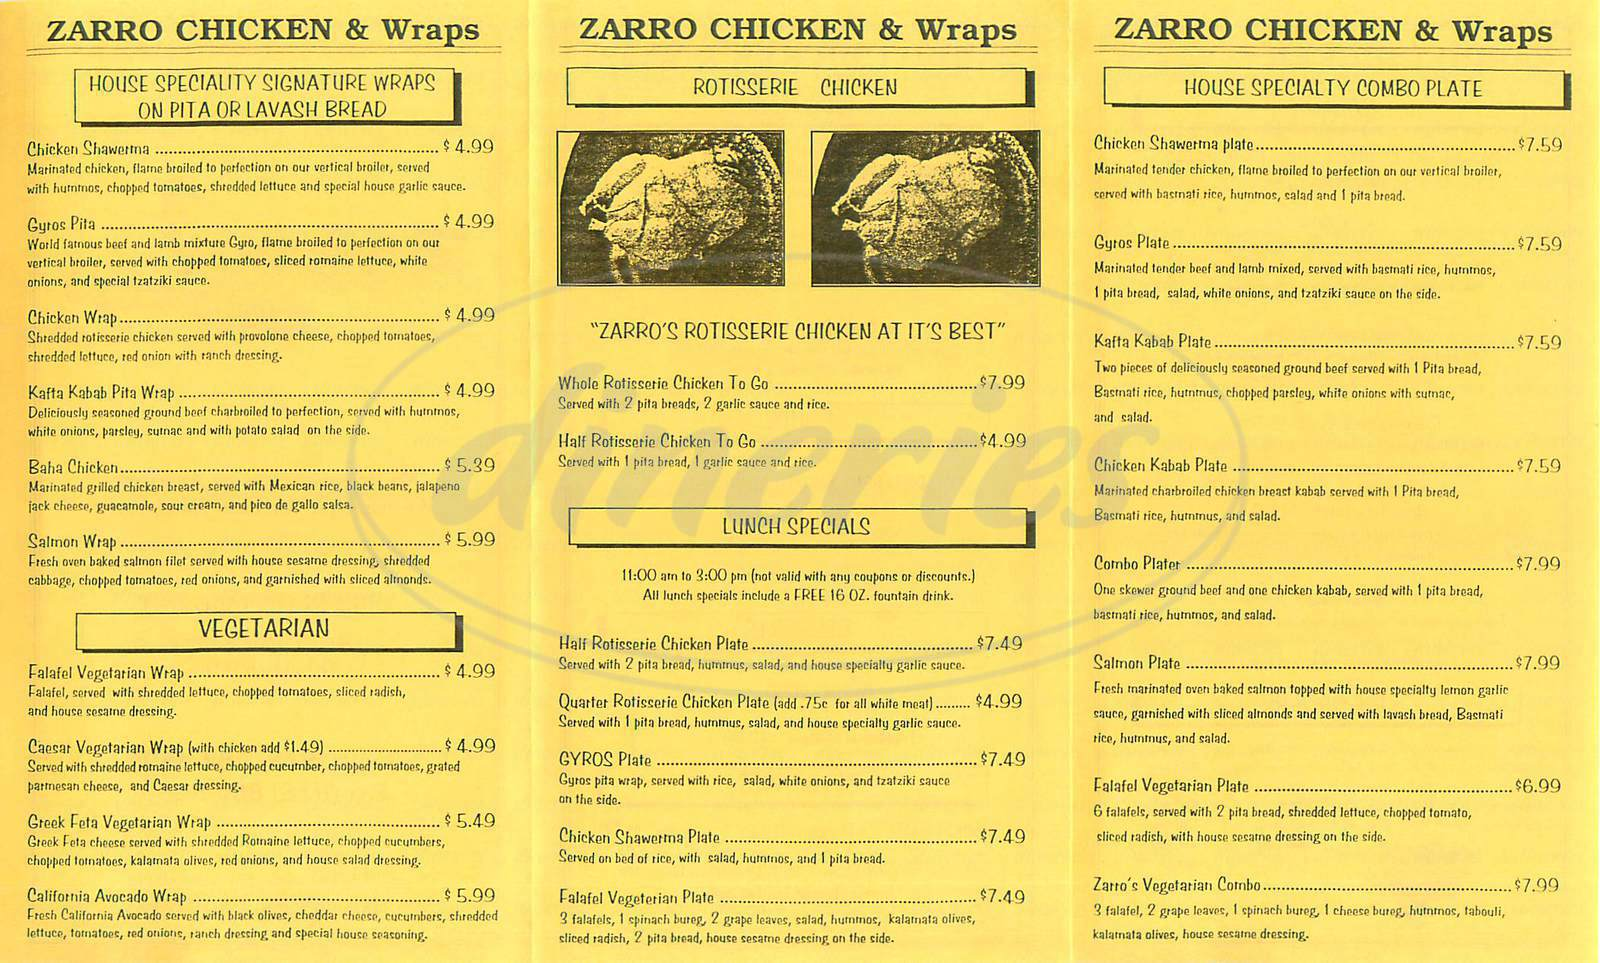 menu for Zarro Chicken